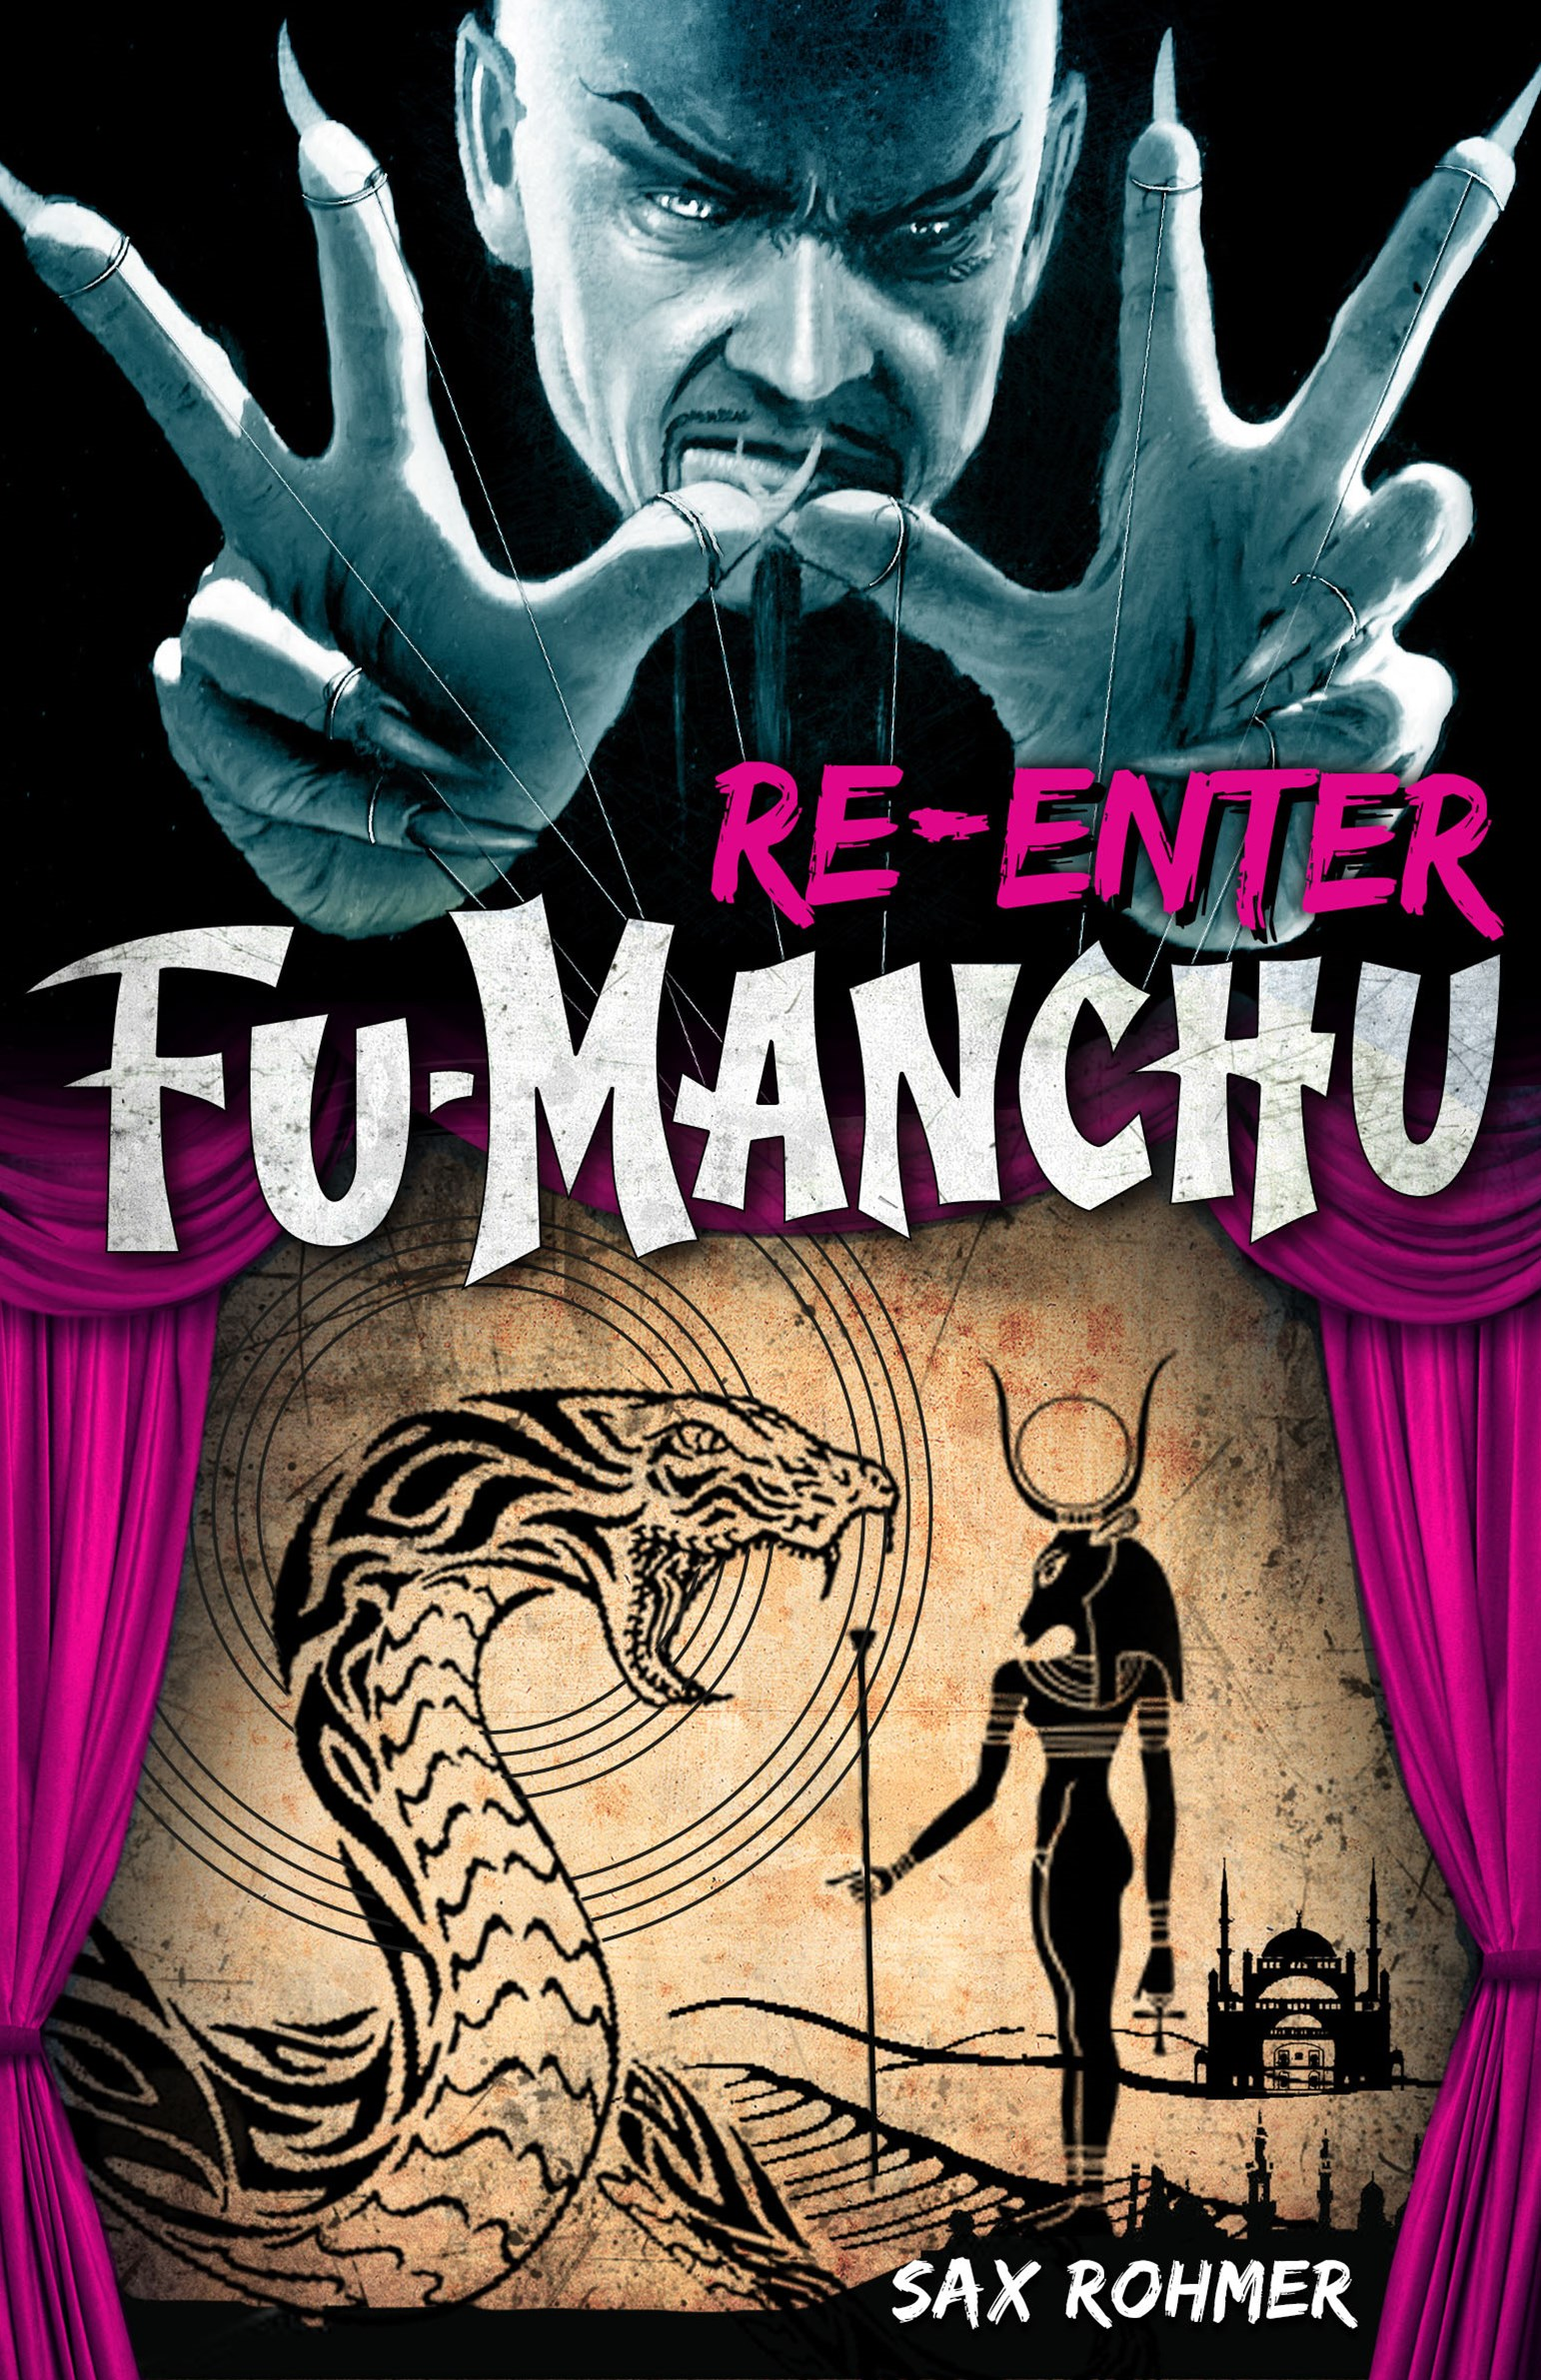 Fu-Manchu - Re-Enter Fu-Manchu